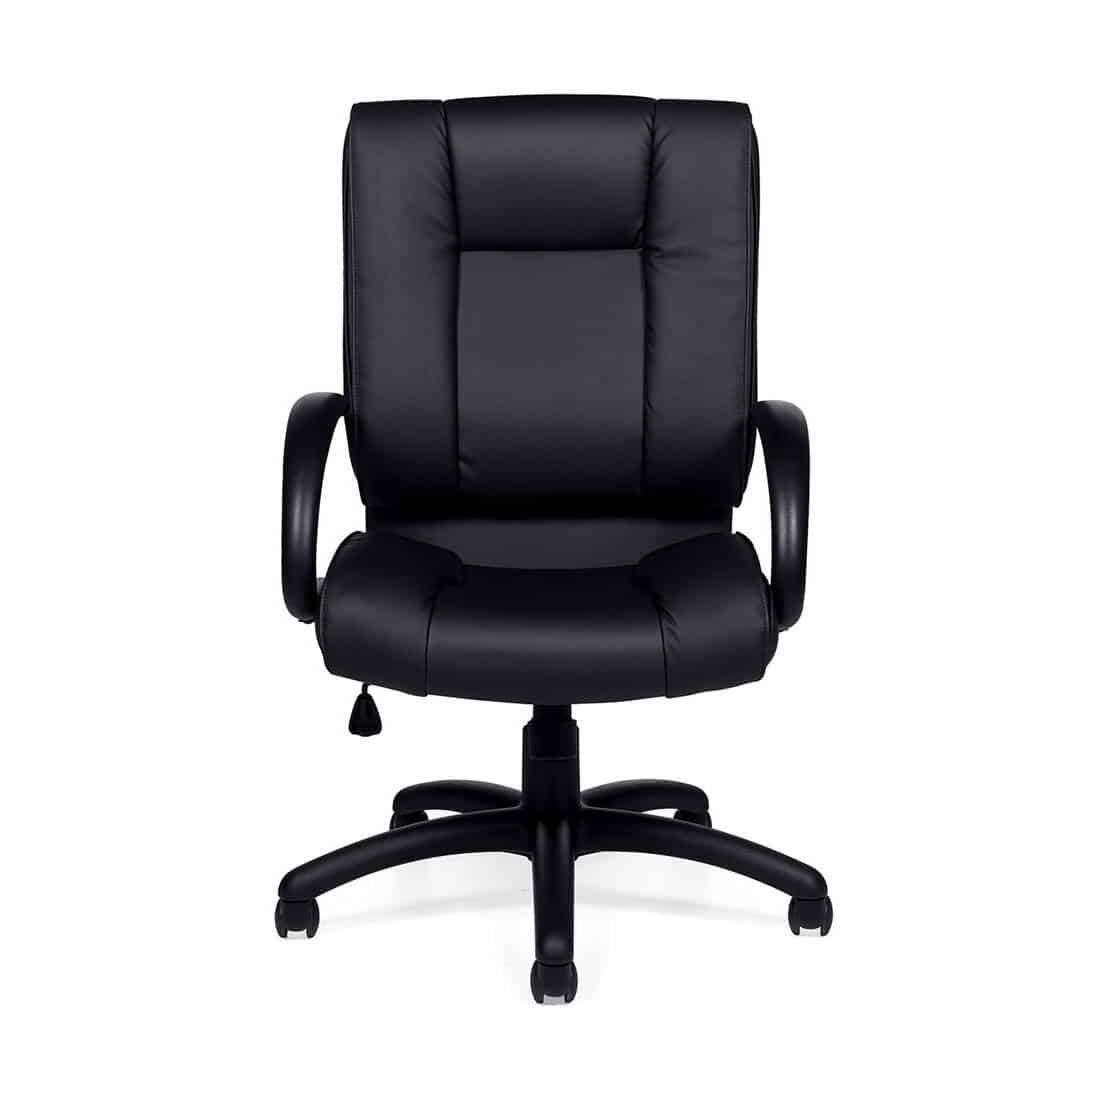 luxhide high back conference room chair